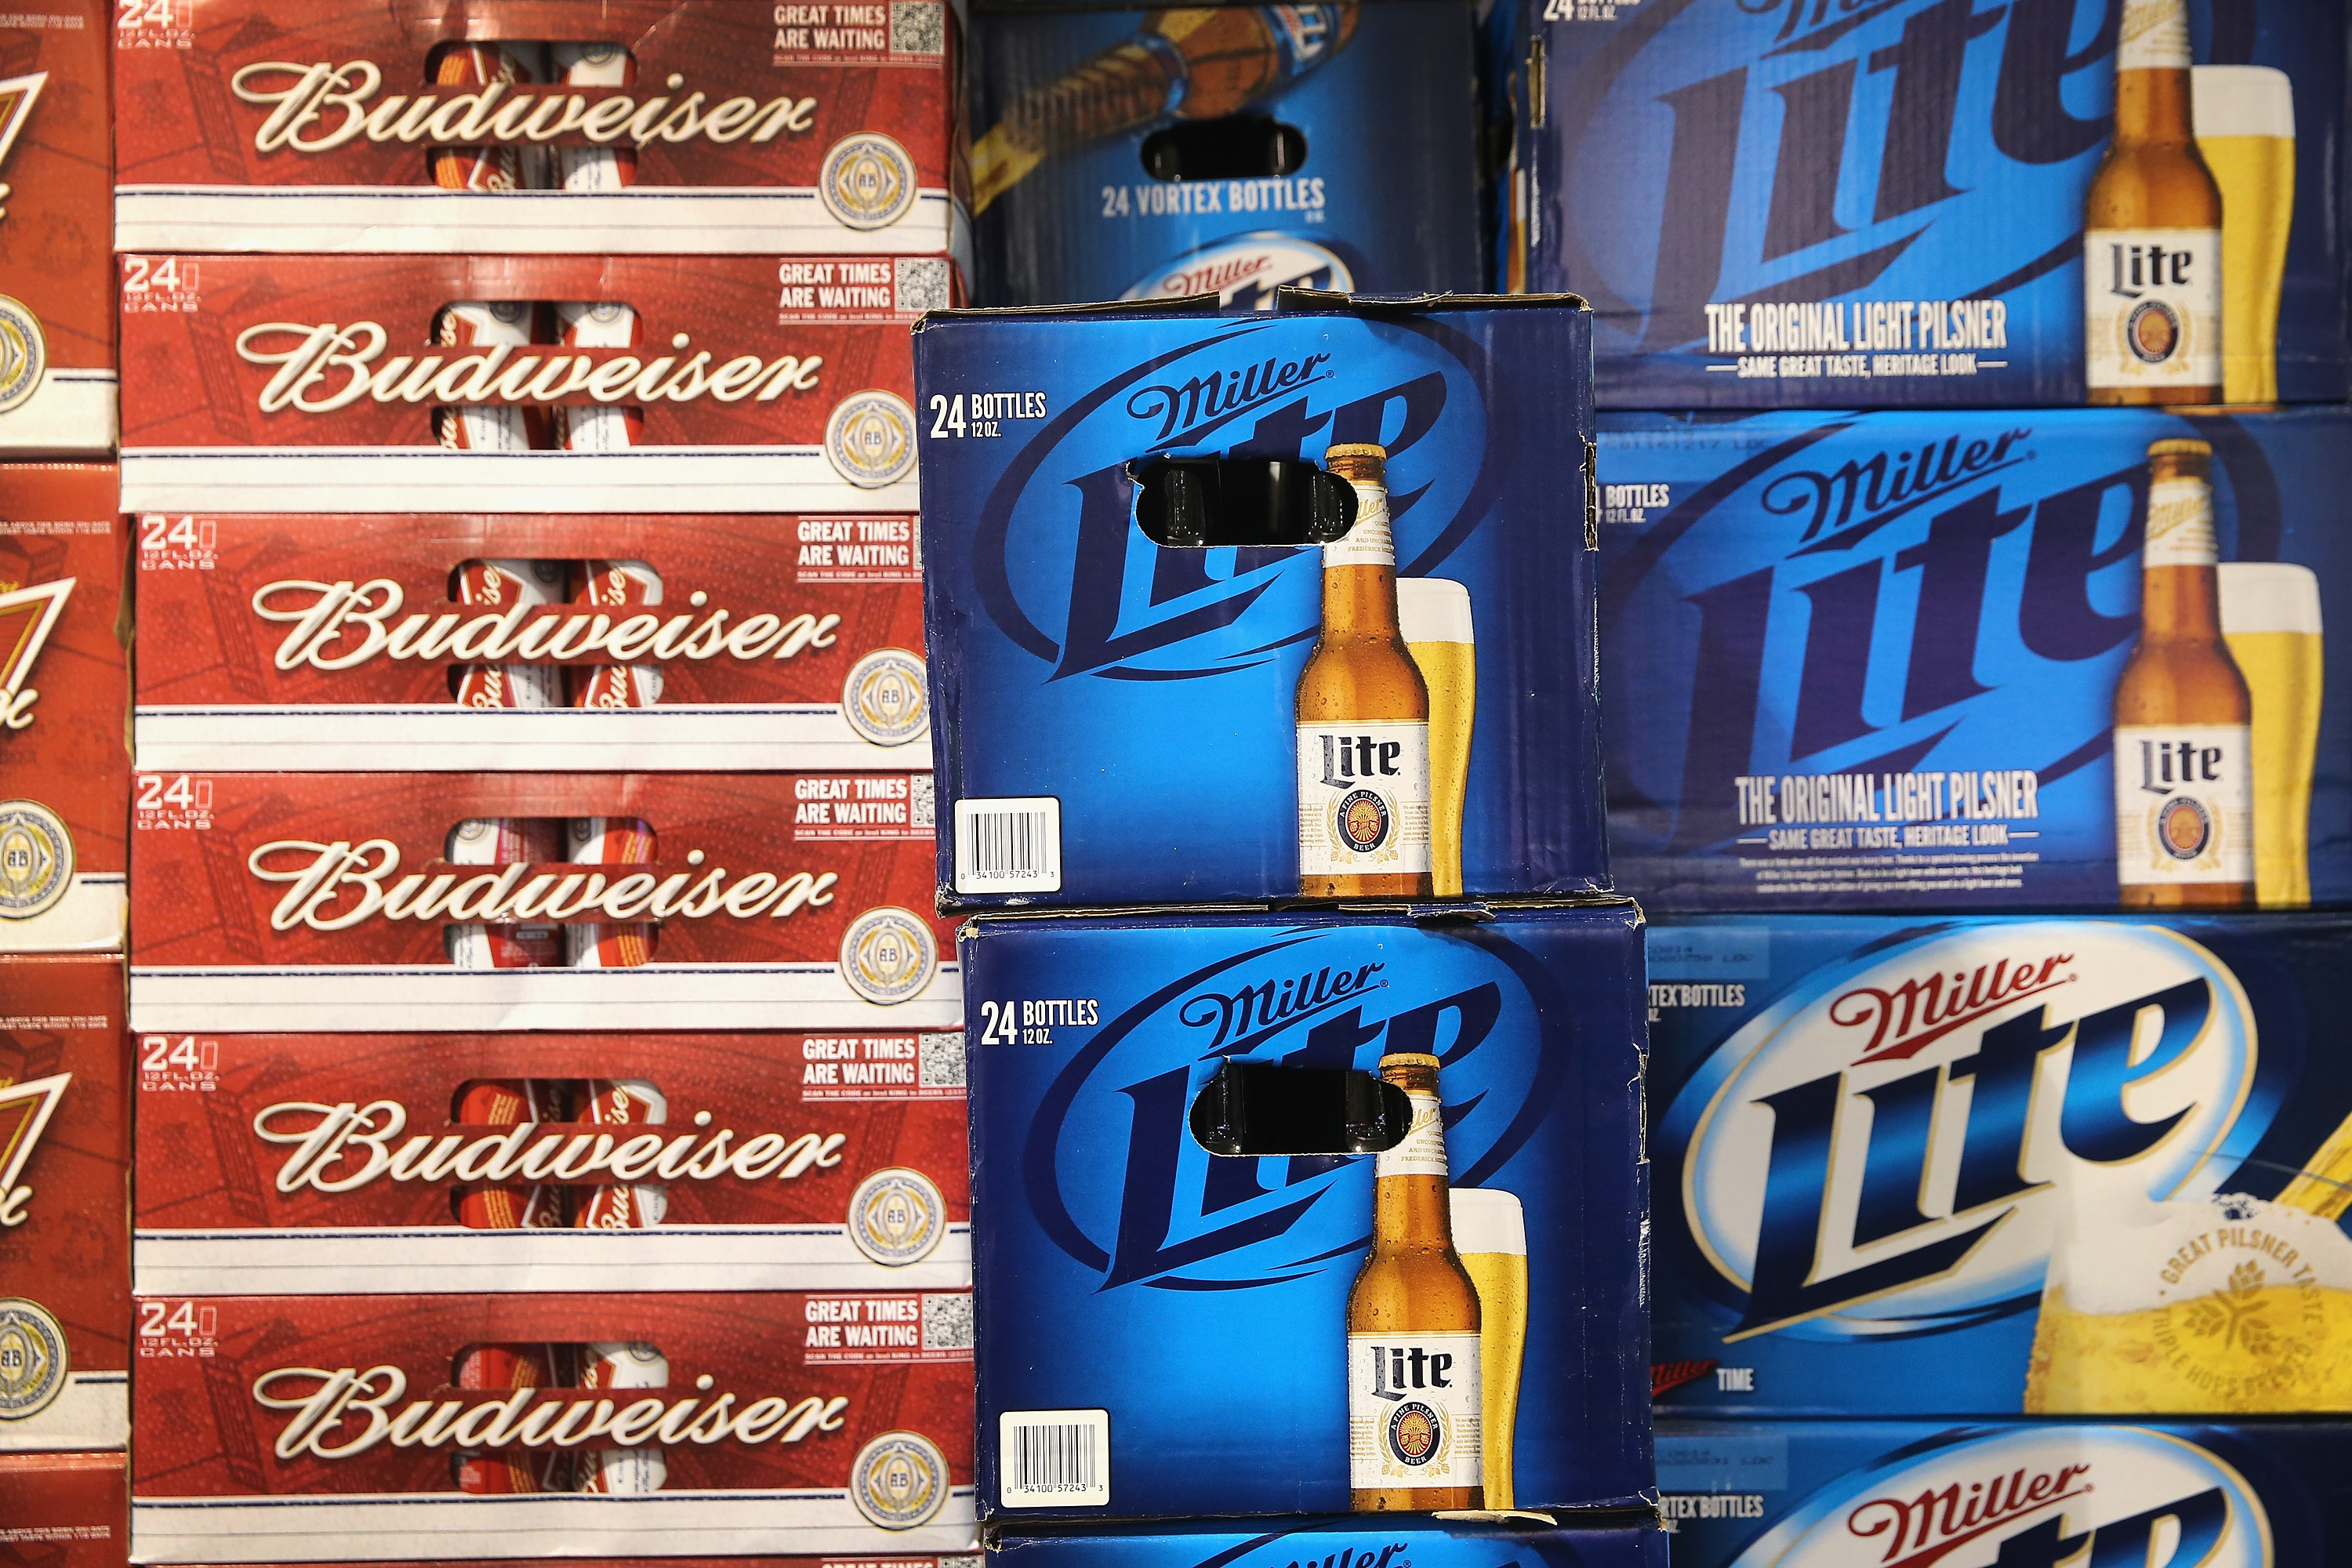 SABMiller and Anheuser-Busch InBev products are offered for sale on September 15, 2014 in Chicago. Illinois. Share of SABMiller have surged to an all-time high today on speculation of a takeover bid by Anheuser-Busch InBev, the world's largest brewer.